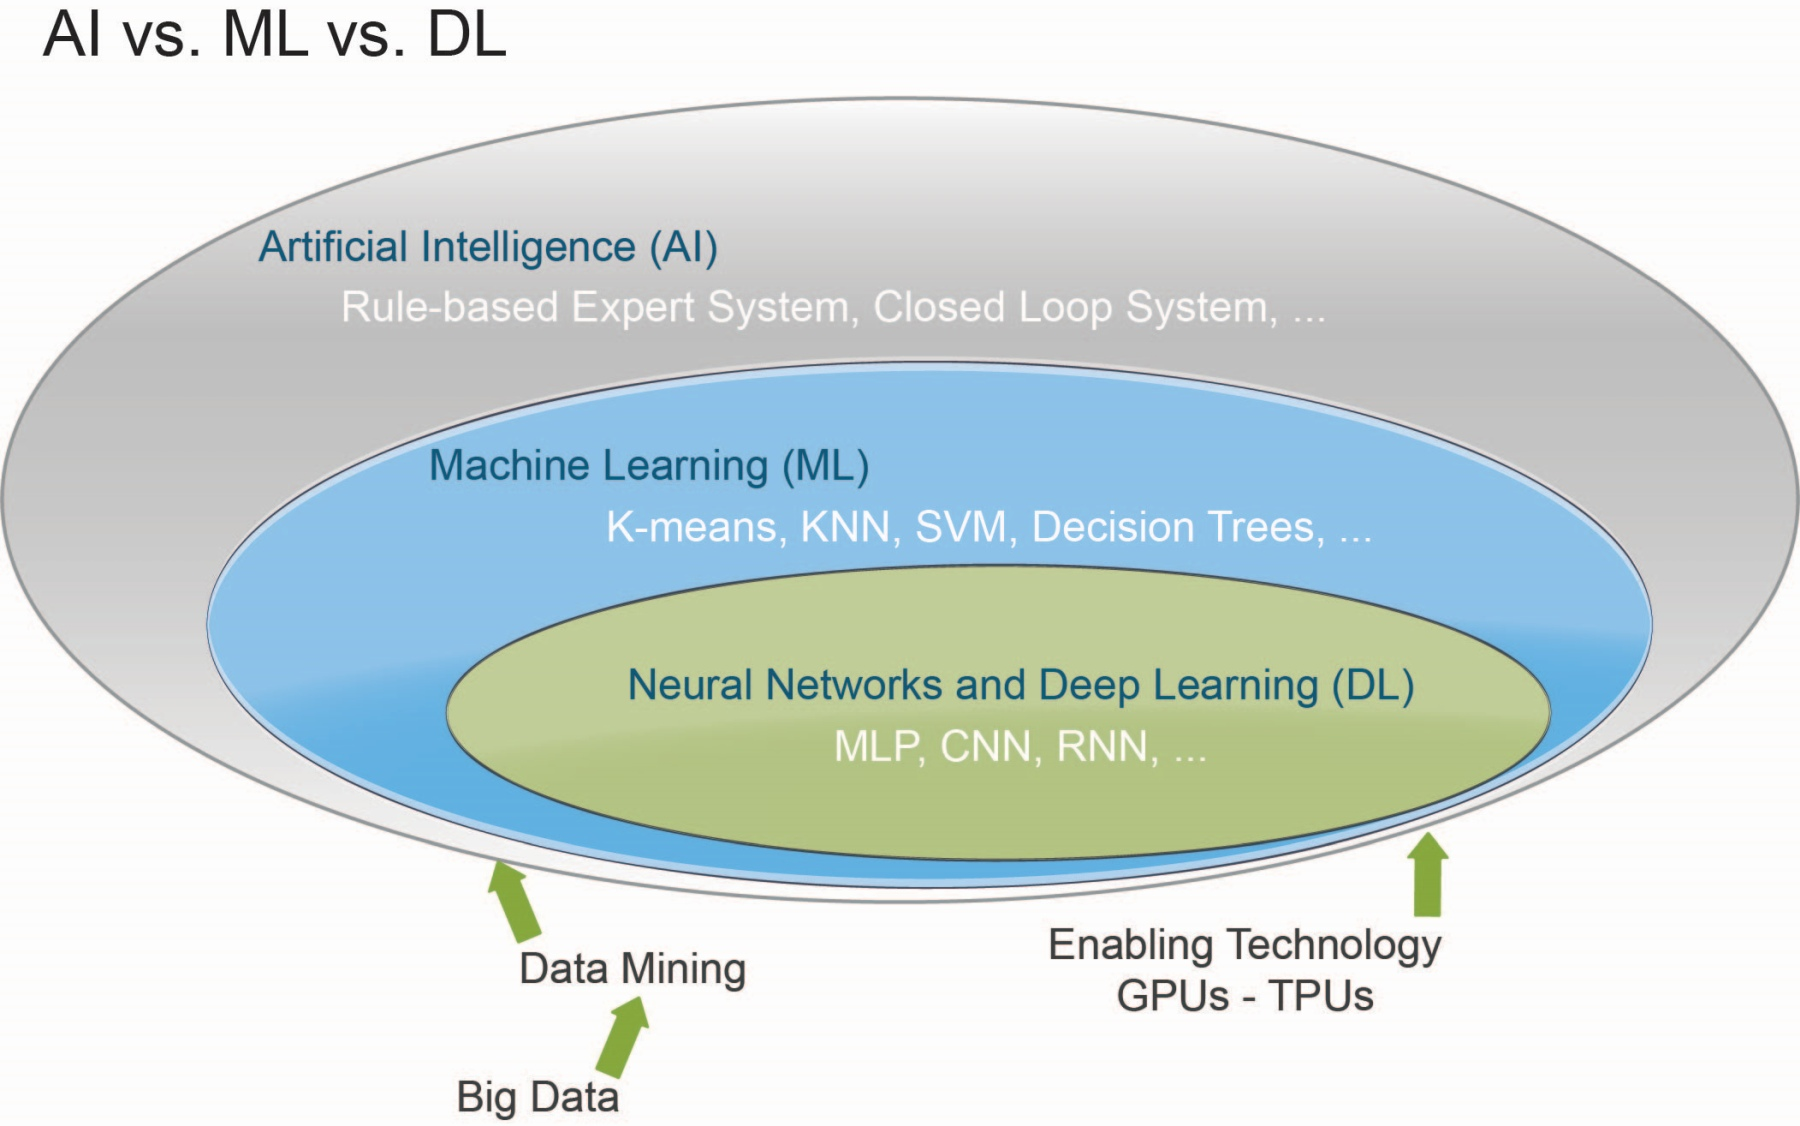 Comparing AI, ML, and DL